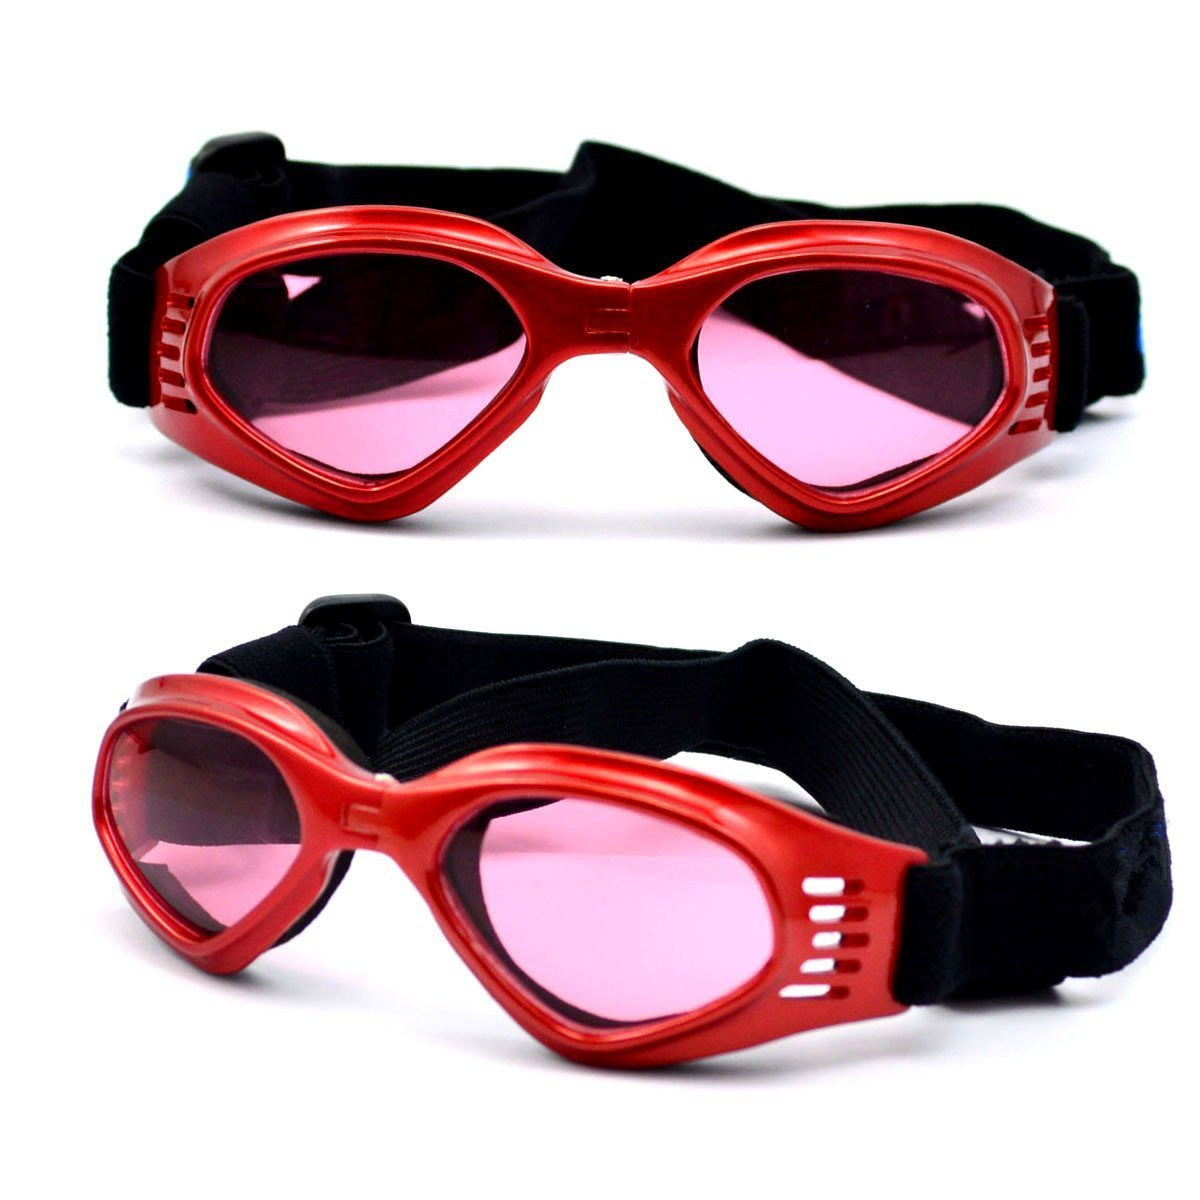 OxyPlay Dog Goggles Windproof Adorable Doggie Puppy Sunglasses for Small Dogs of Surfing, Motorcycle, Photograph … (Red) by OxyPlay (Image #3)